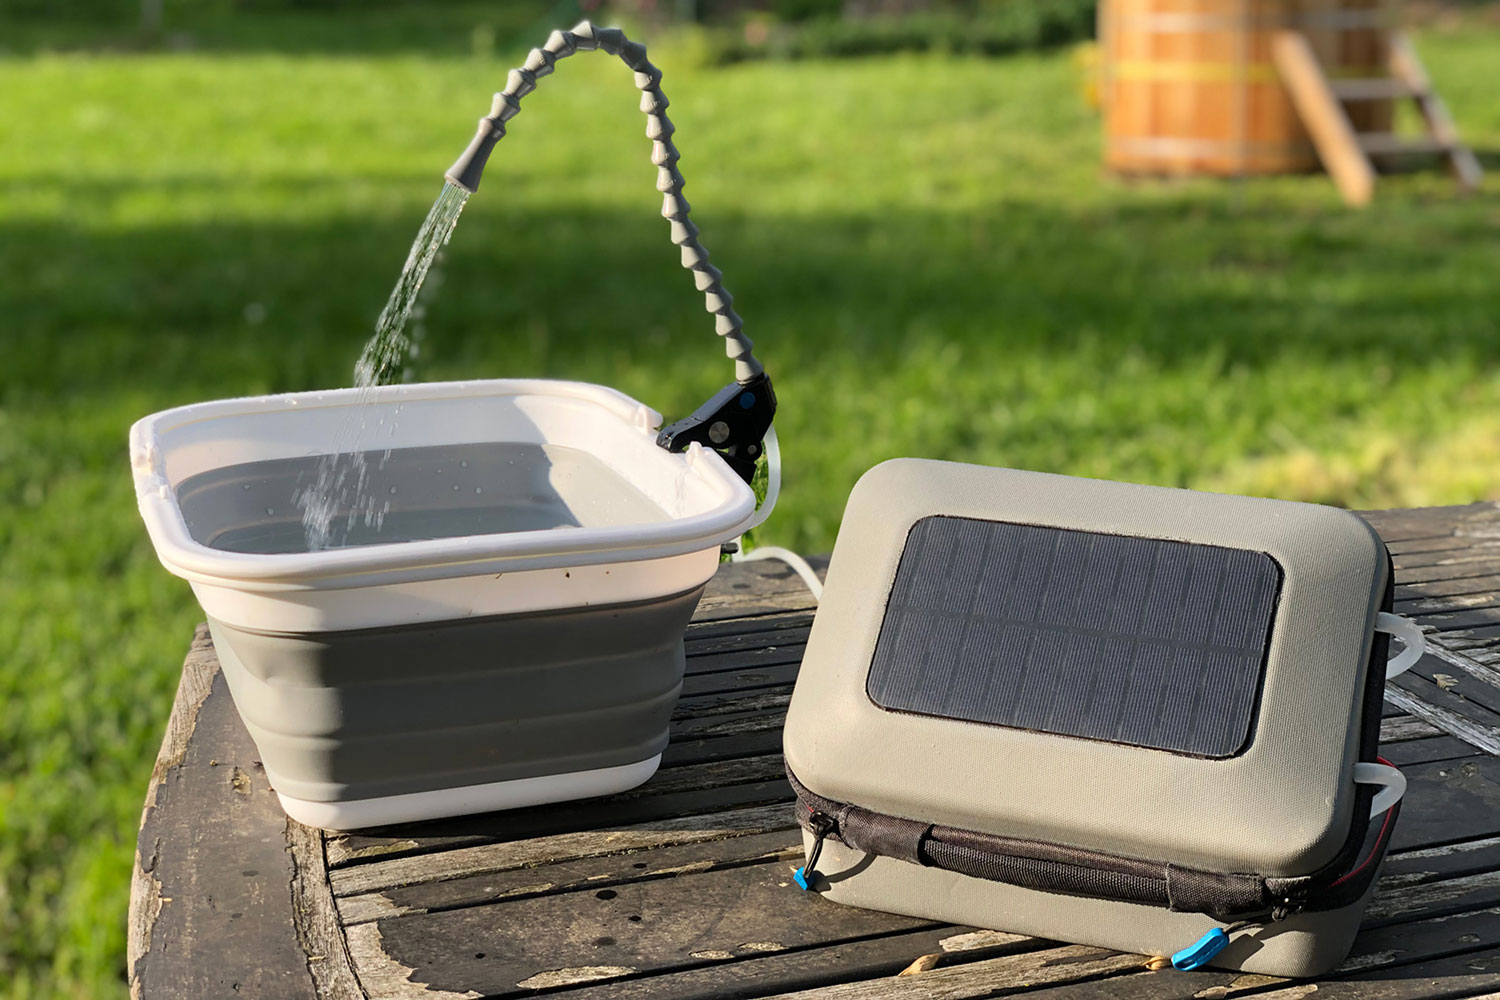 GoSun Flow, a solar-powered water purifier and portable sanitation station